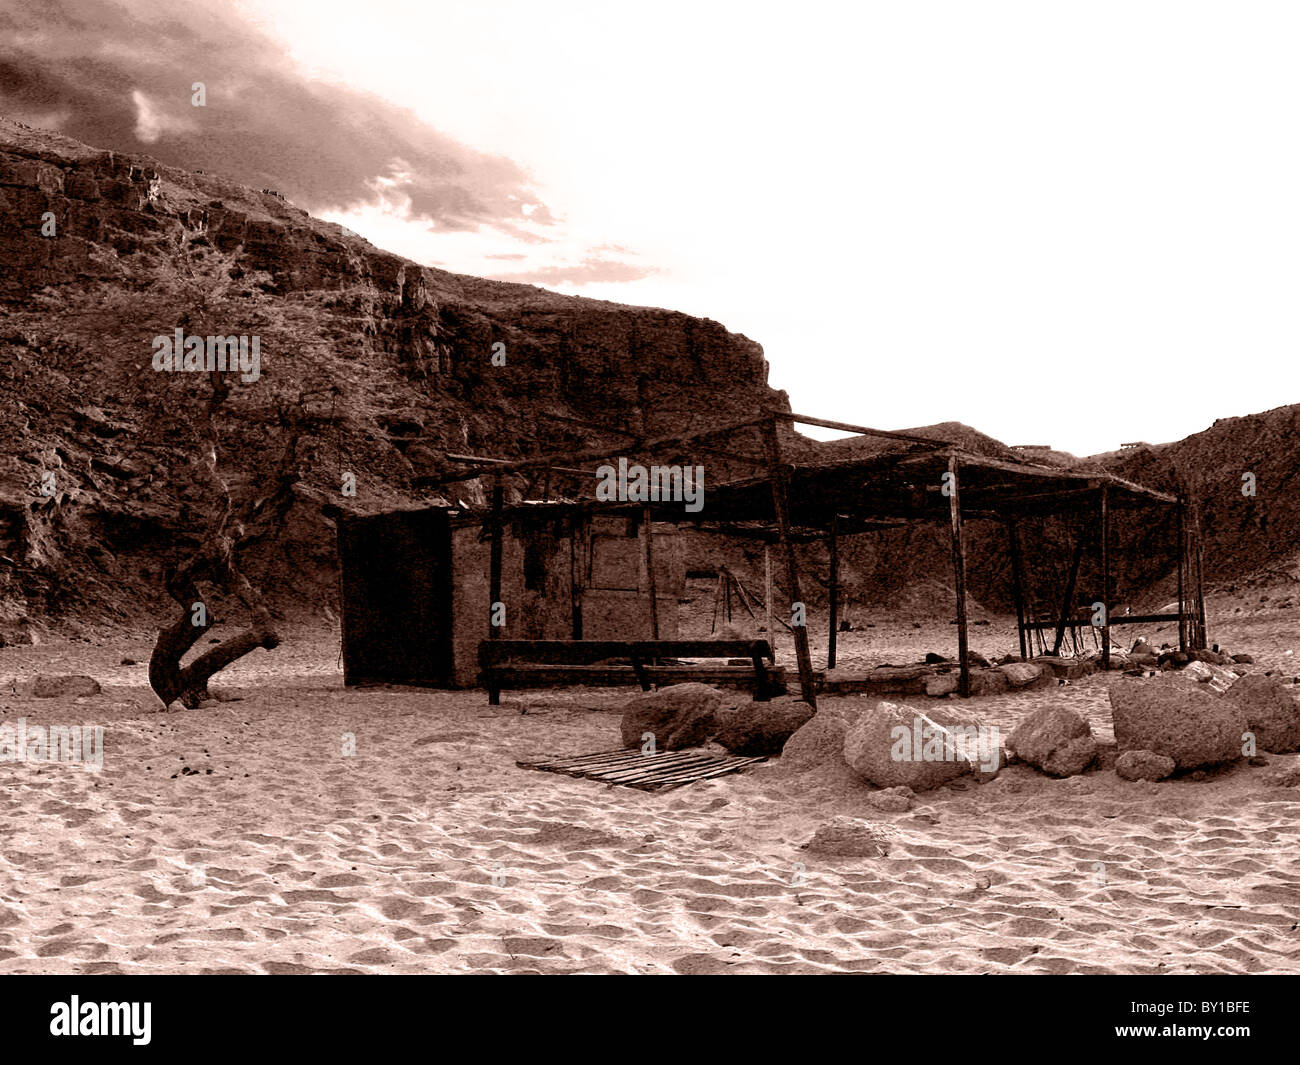 A Bedouin rest camp in the Sinai peninsula of Egypt - Stock Image